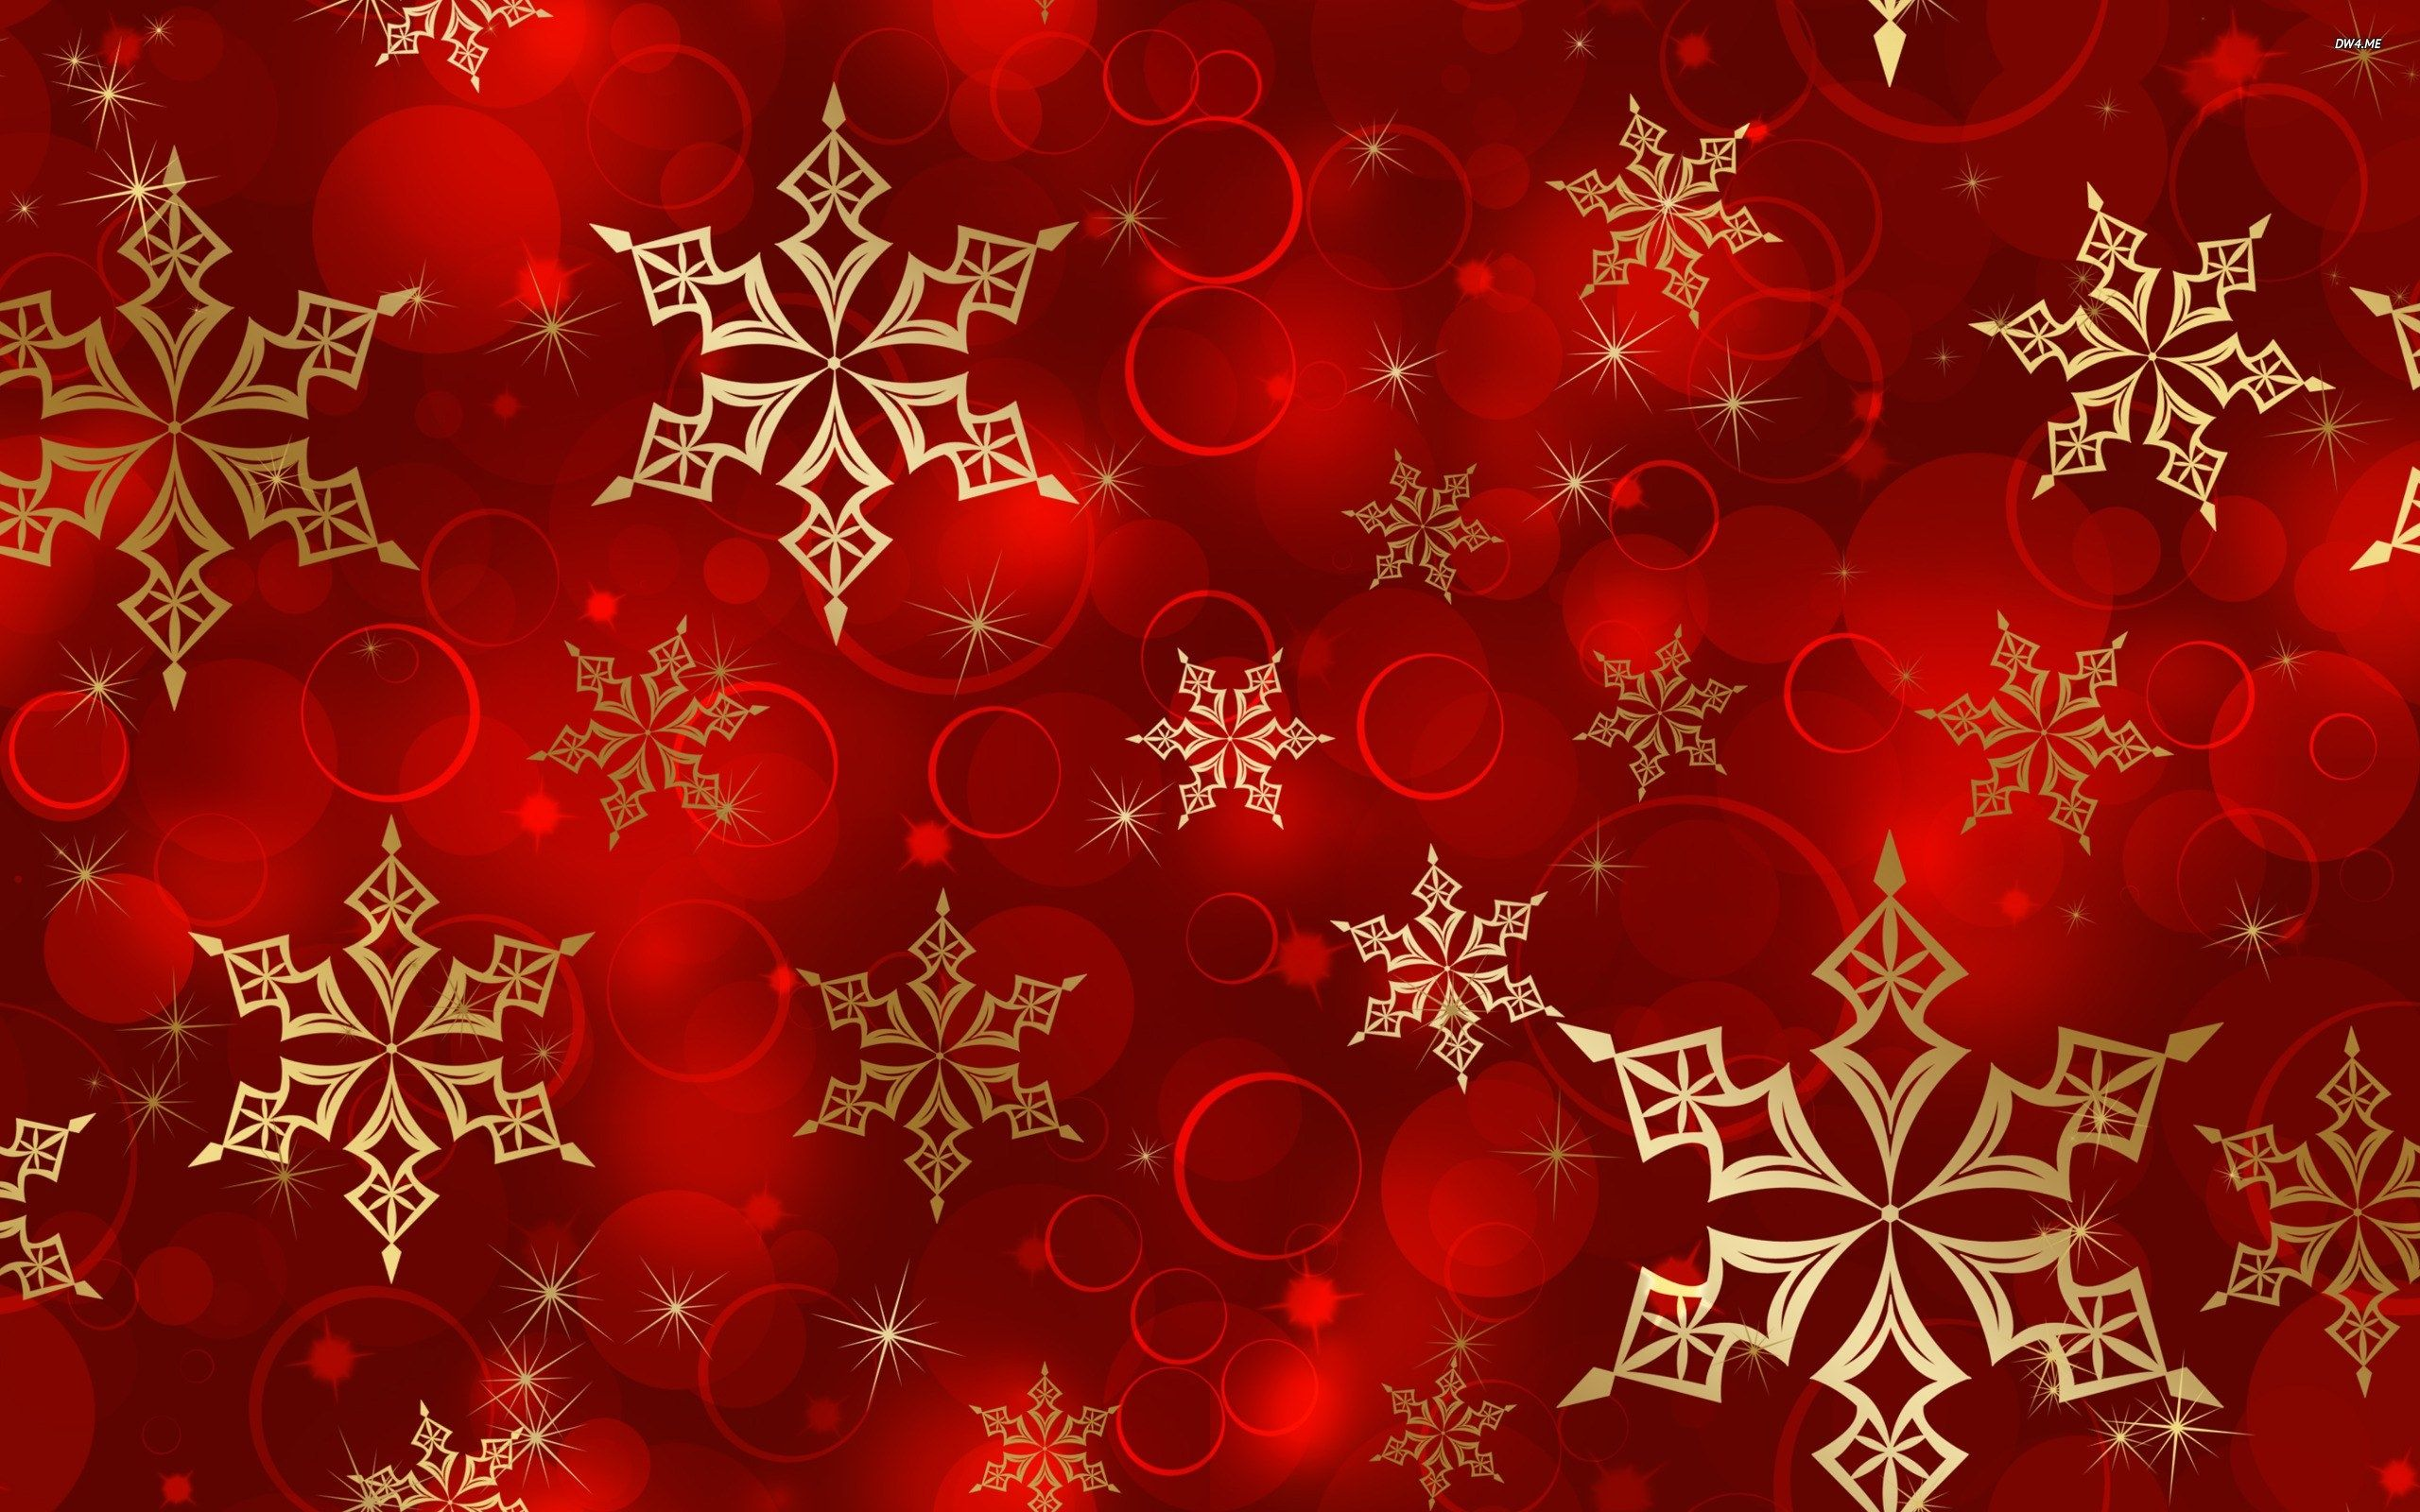 Red Christmas Snowflake Backgrounds Happy Holidays Intended For Christmas Red Snowfl Red Christmas Background Tumblr Christmas Backgrounds Christmas Background